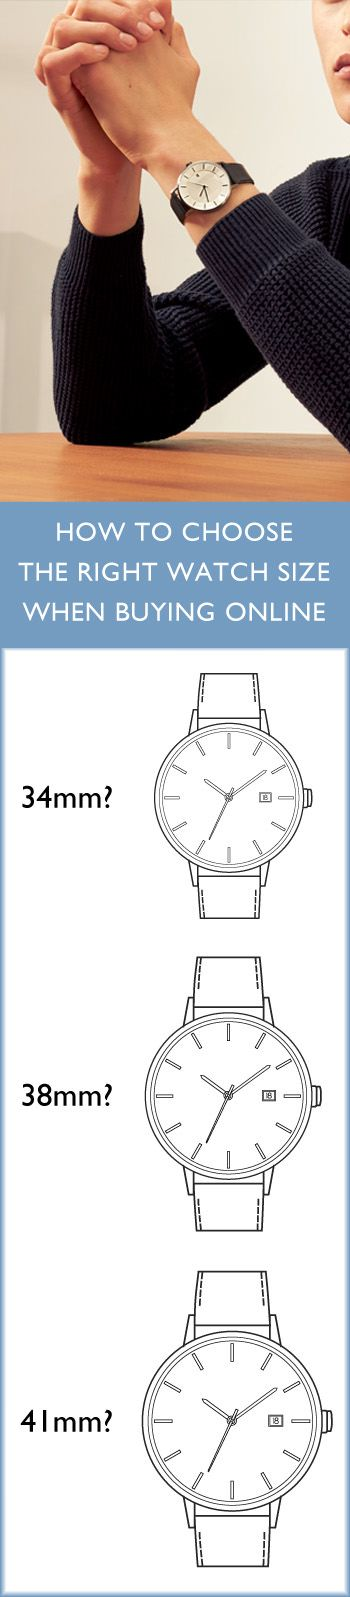 Still haven't found the perfect size for your wrist? Here's what we suggest for Linjer watches for men and women | 34mm: feminine and elegantly proportioned, for women with small and medium wrists | 38mm: perfect for women with larger wrists | 41mm: for women who want an oversized watch face | Our watches come in all three of these sizes.